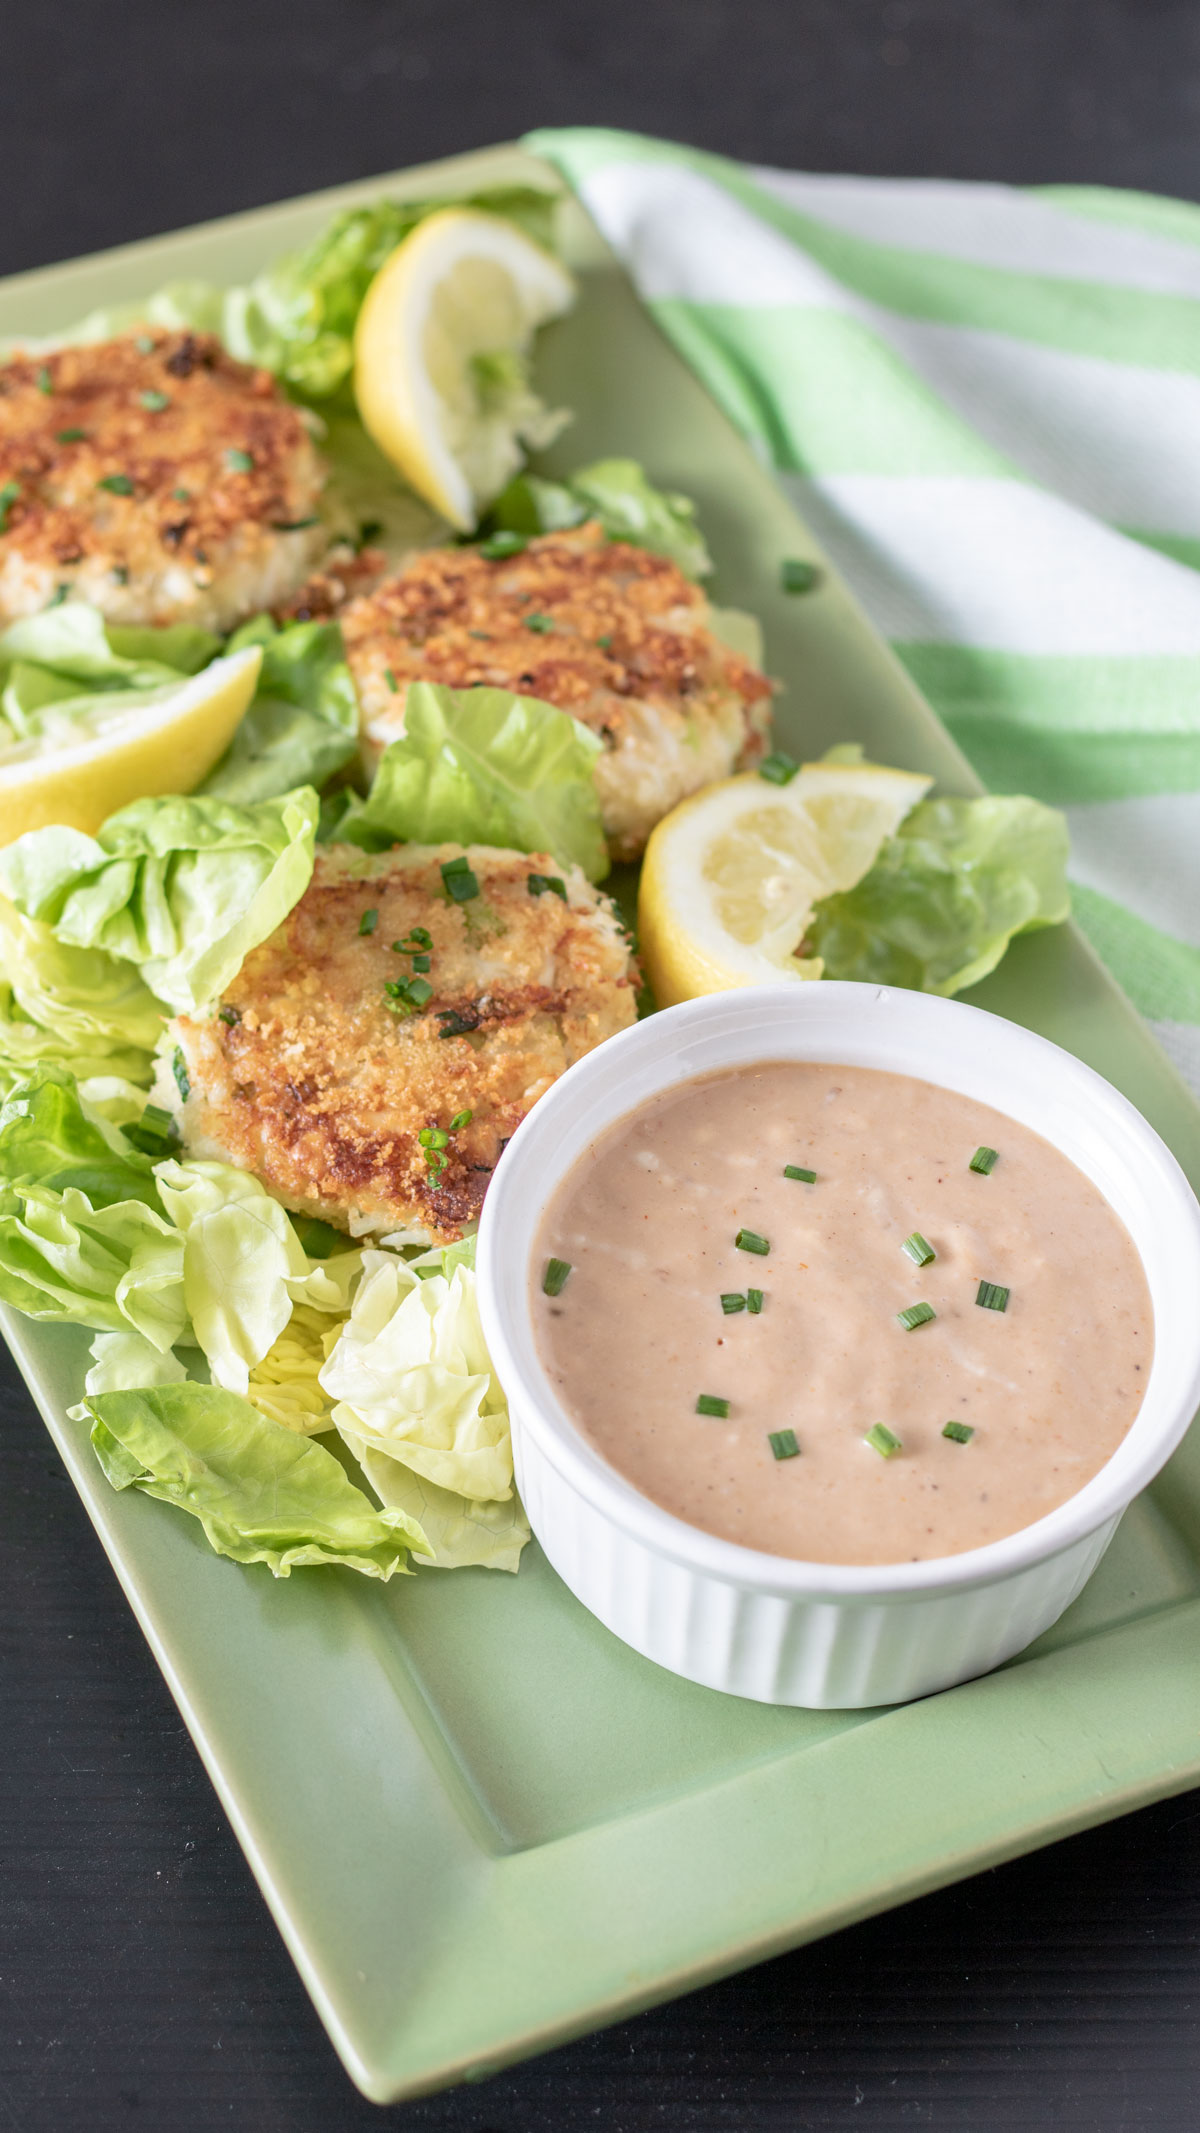 Serving tray with crab cakes and sauce garnished with lettuce leaves.